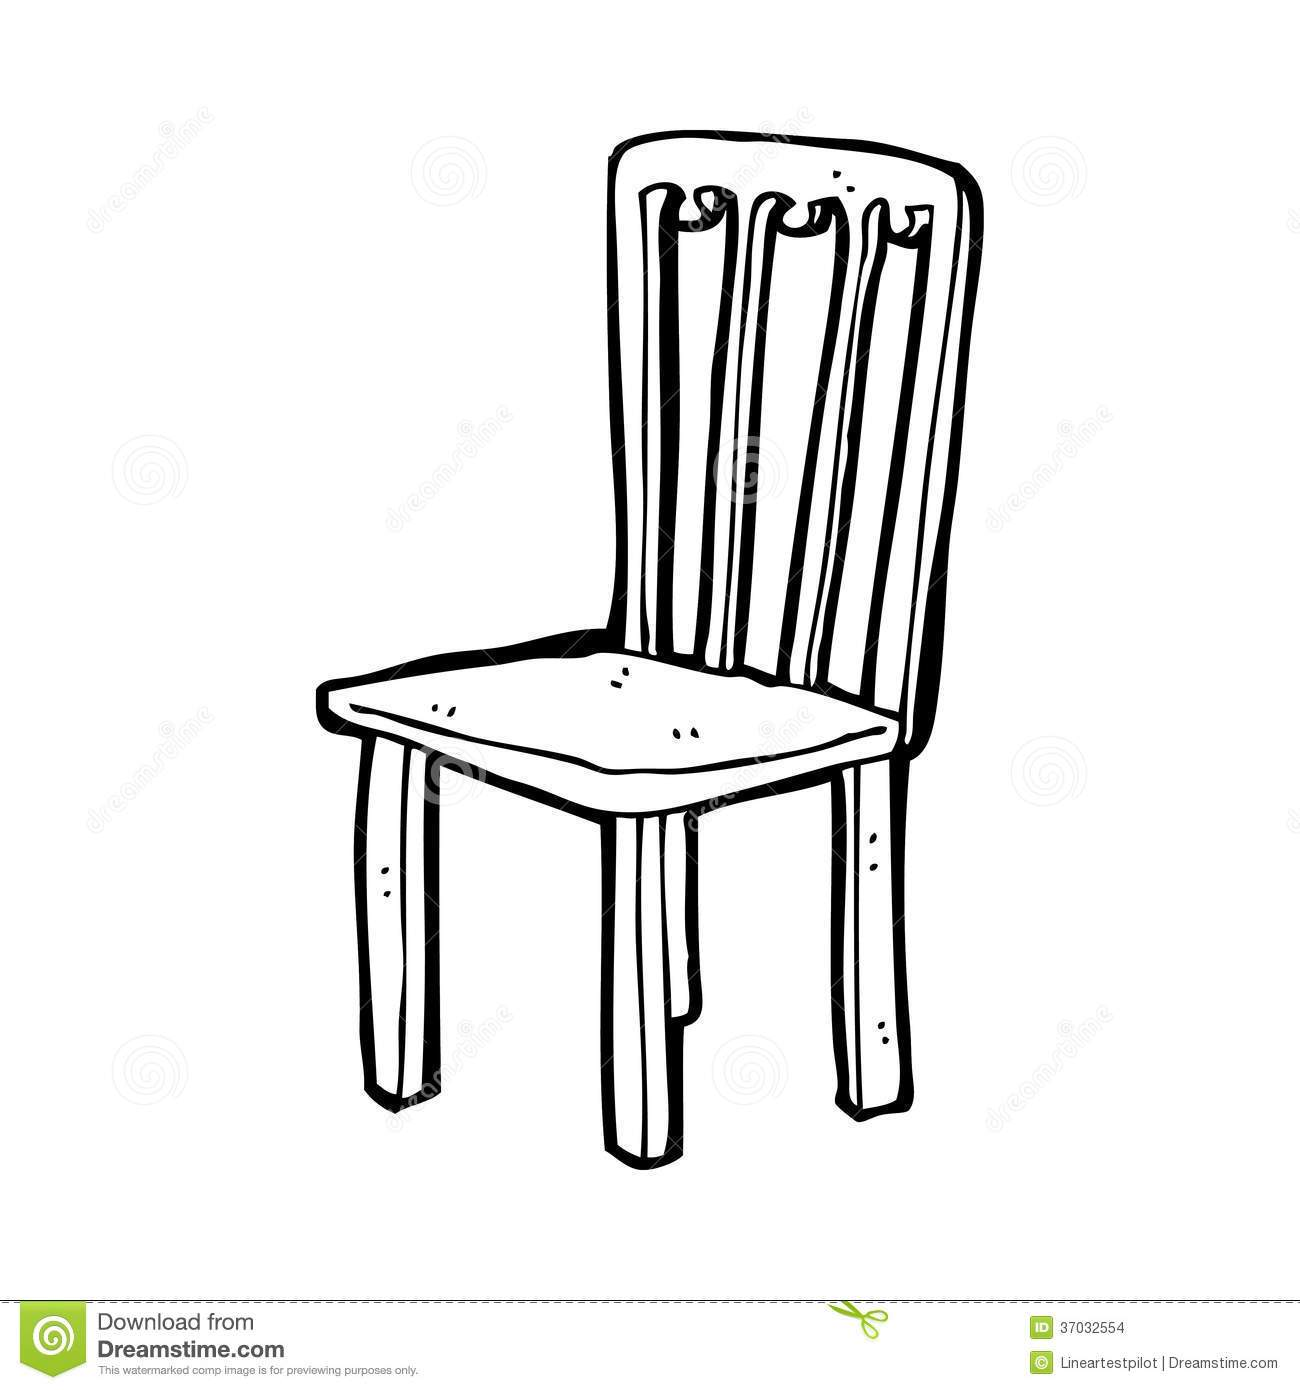 Chair Clipart Black And White Chair Black And White